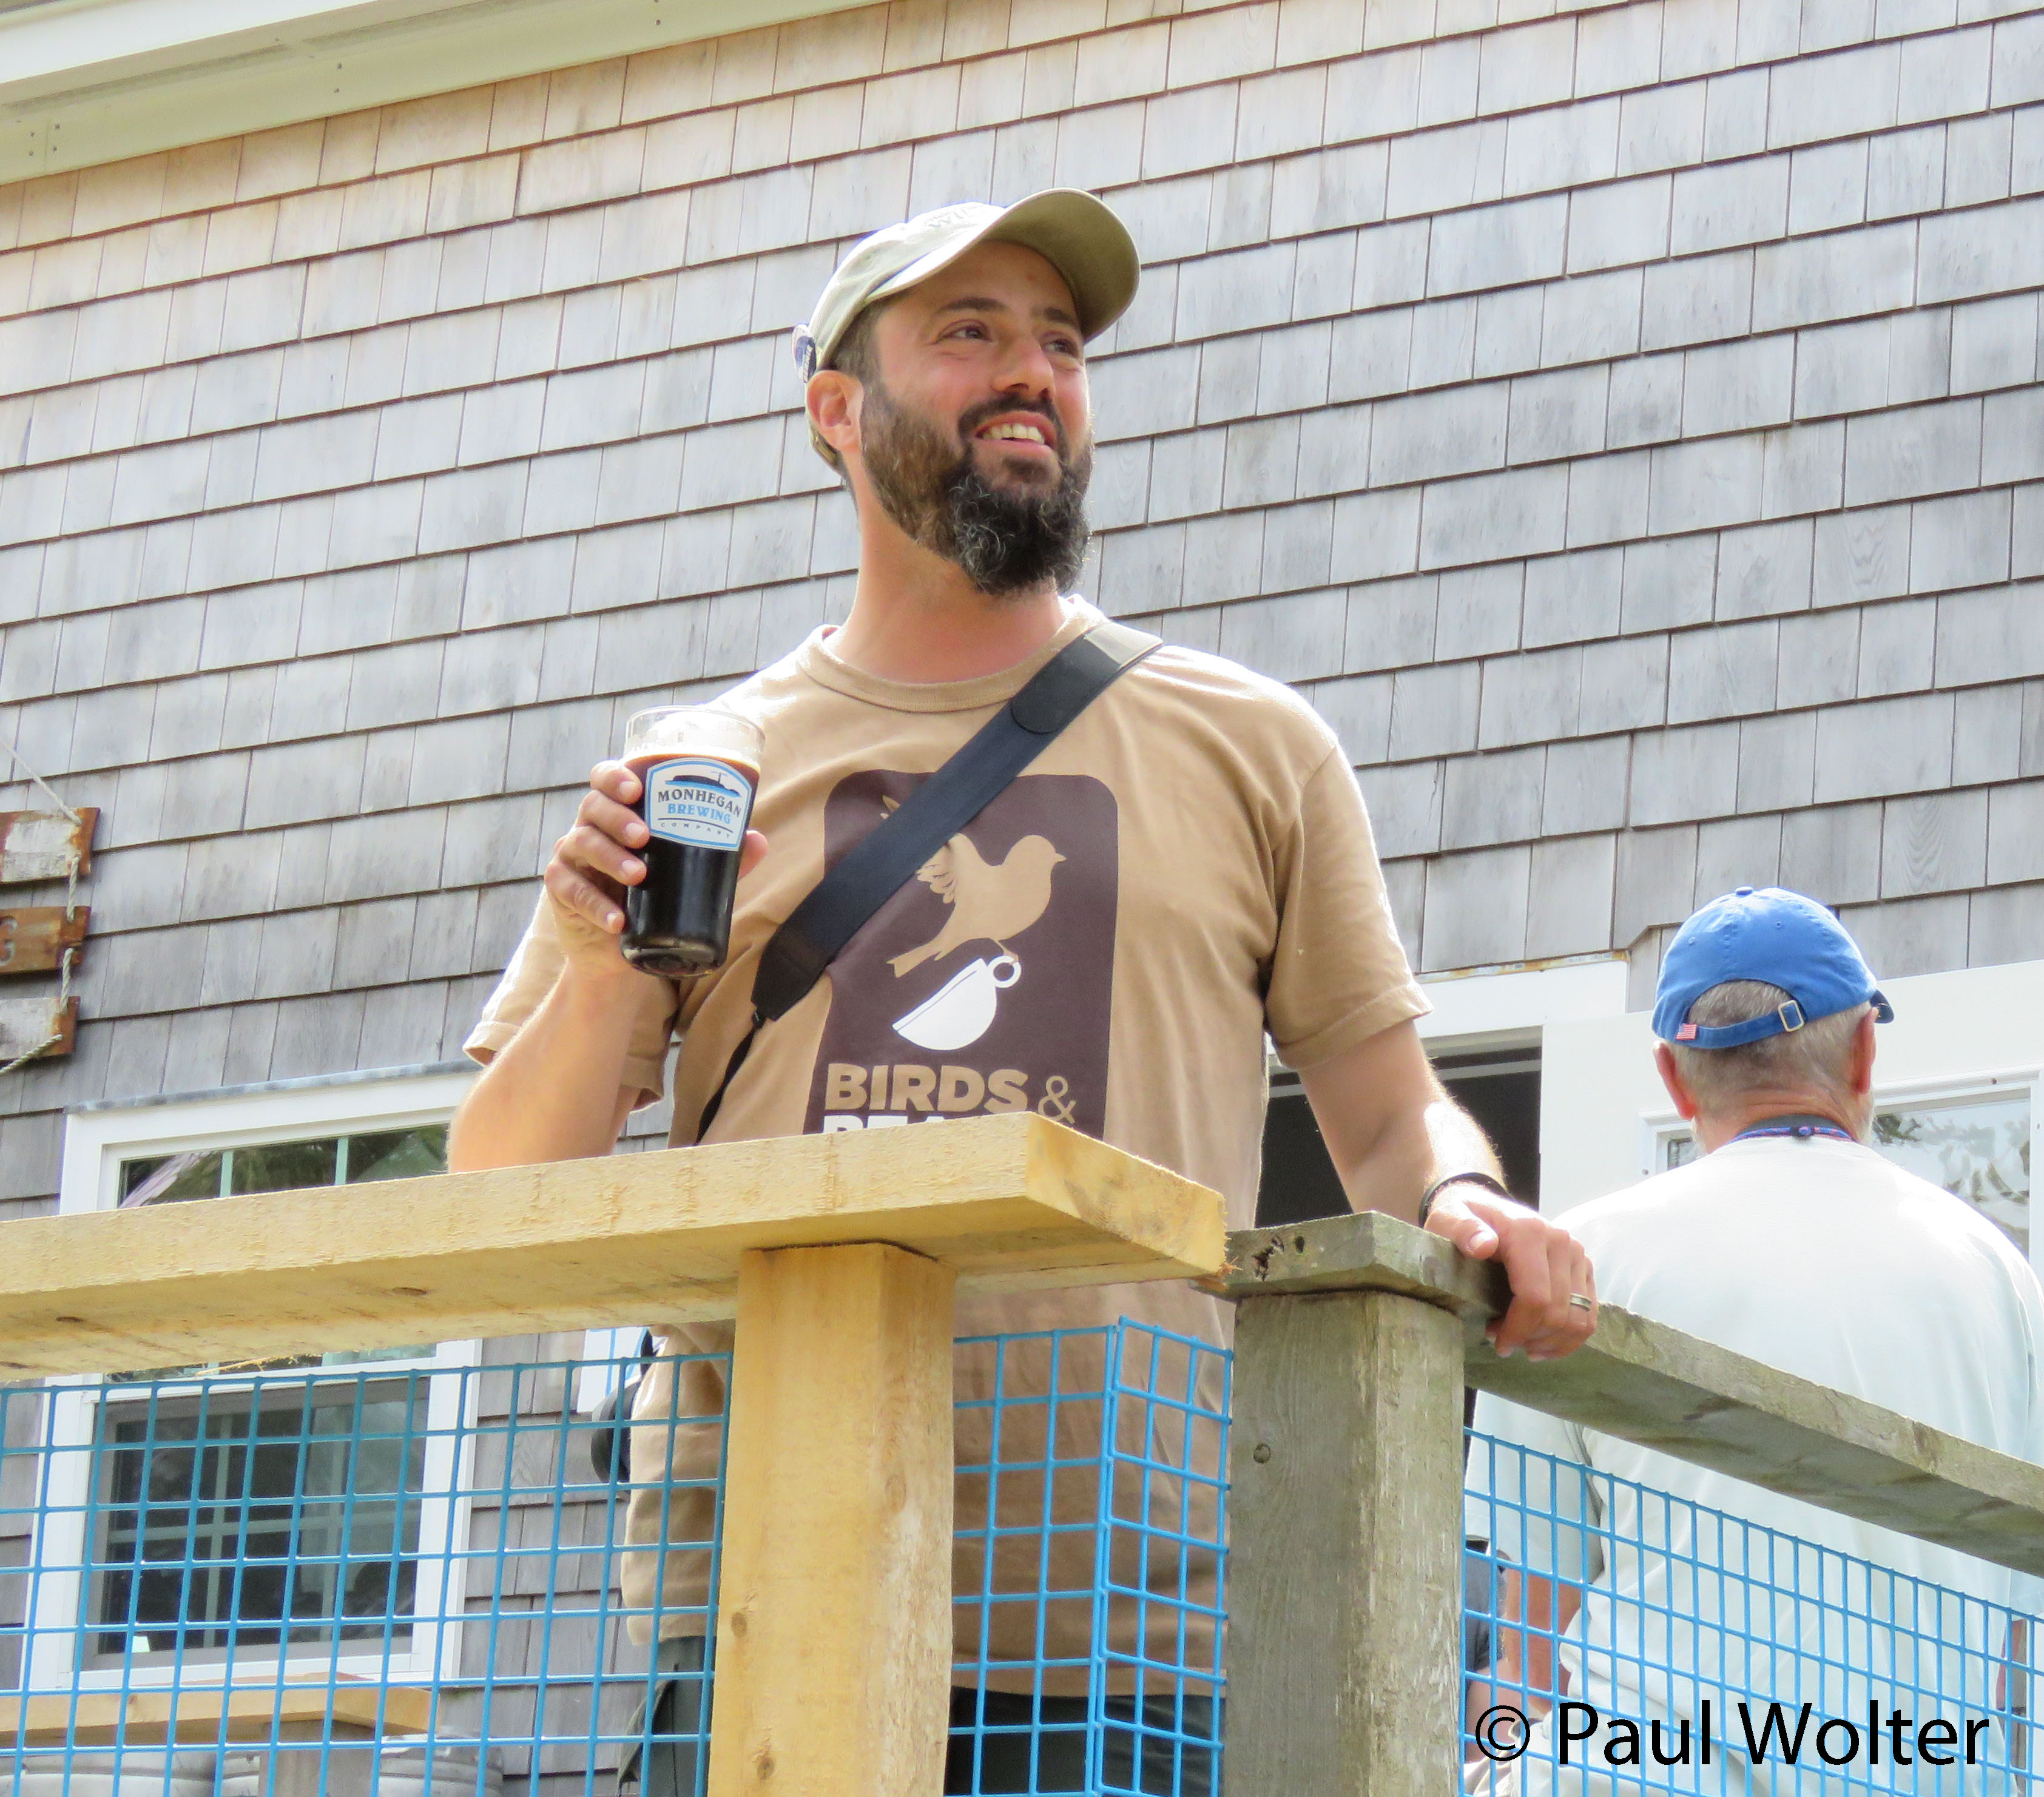 Me_At MonheganBrewing_Paul_Wolter_edited-1